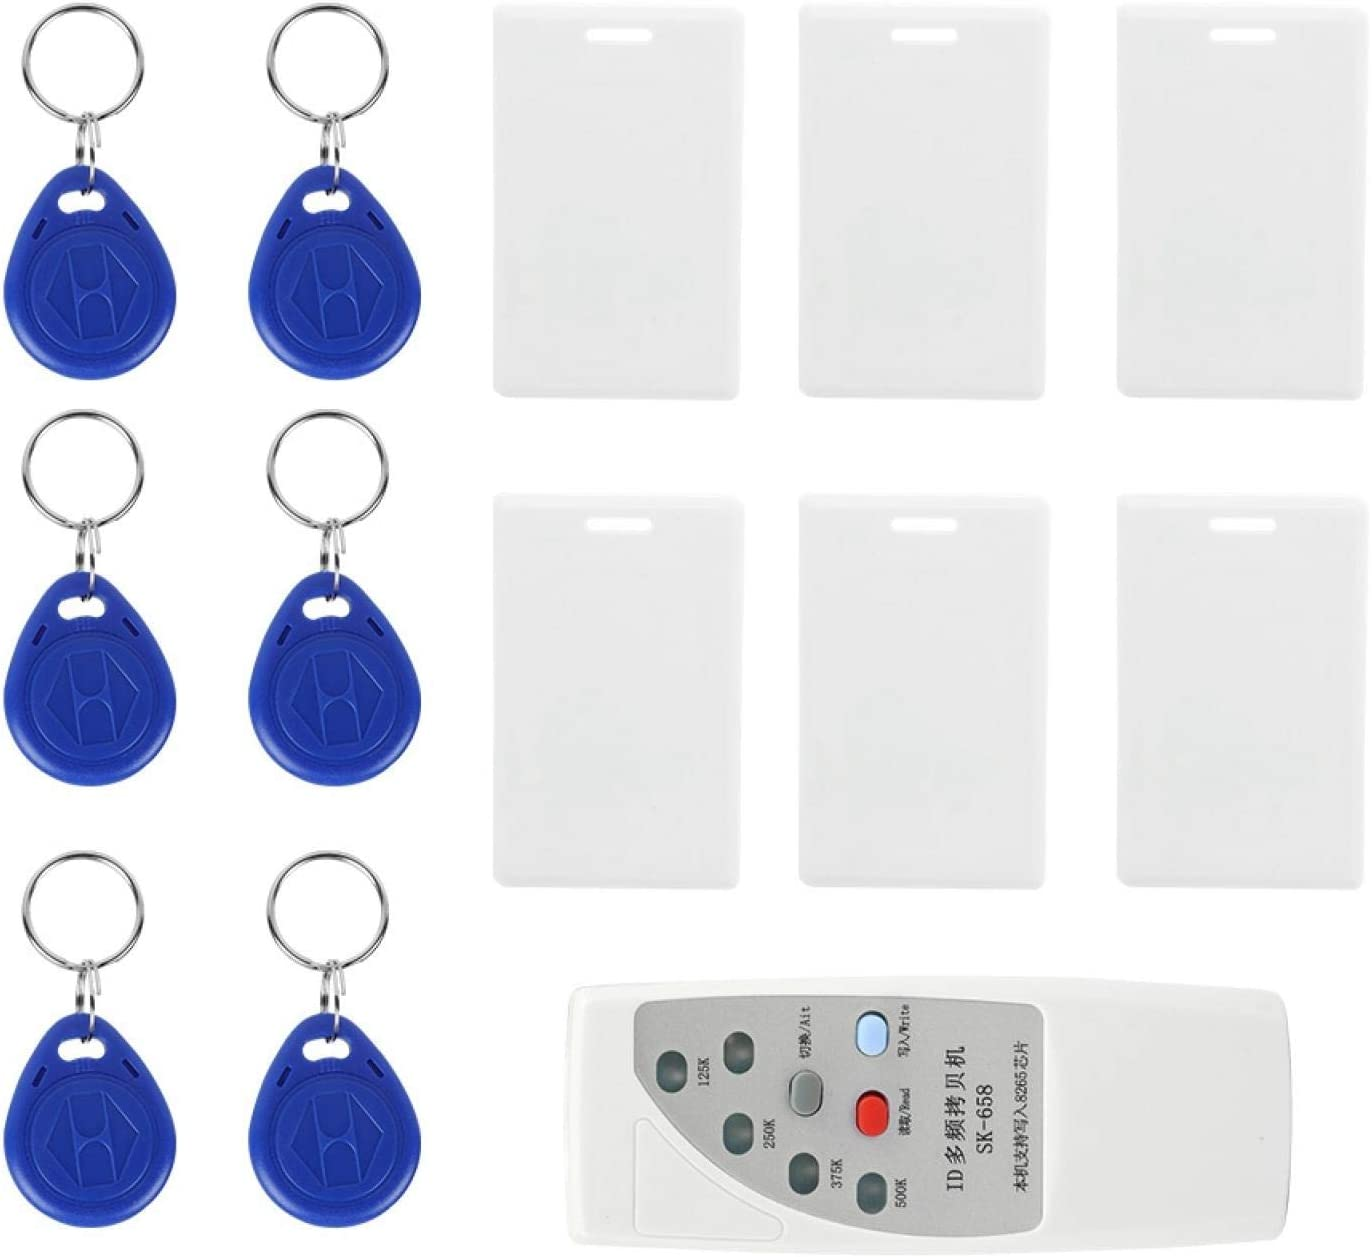 White Id Card Copier, Id Card Reader, Hotel Home Safety Office Apartment Home -Theft System for School Security System Access Control